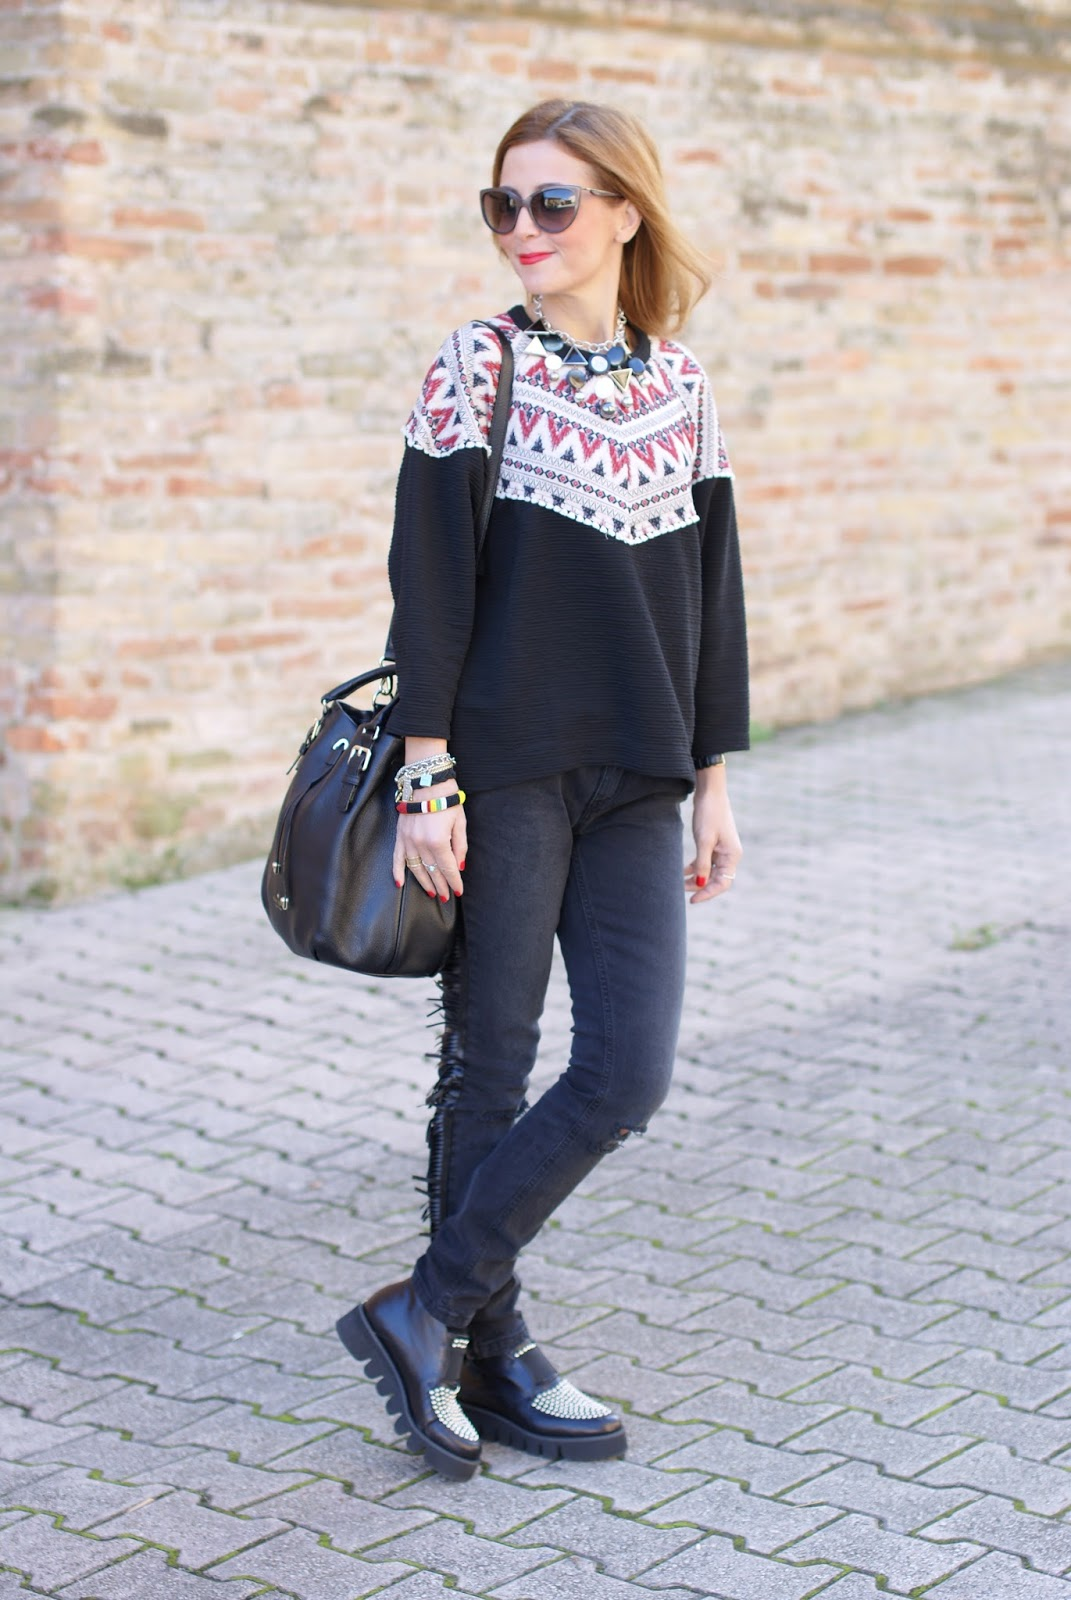 Fringed jeans and Pull & Bear ethnic sweatshirt, B&H shoes for an ethnic chic casual look on Fashion and Cookies fashion blog, fashion blogger style